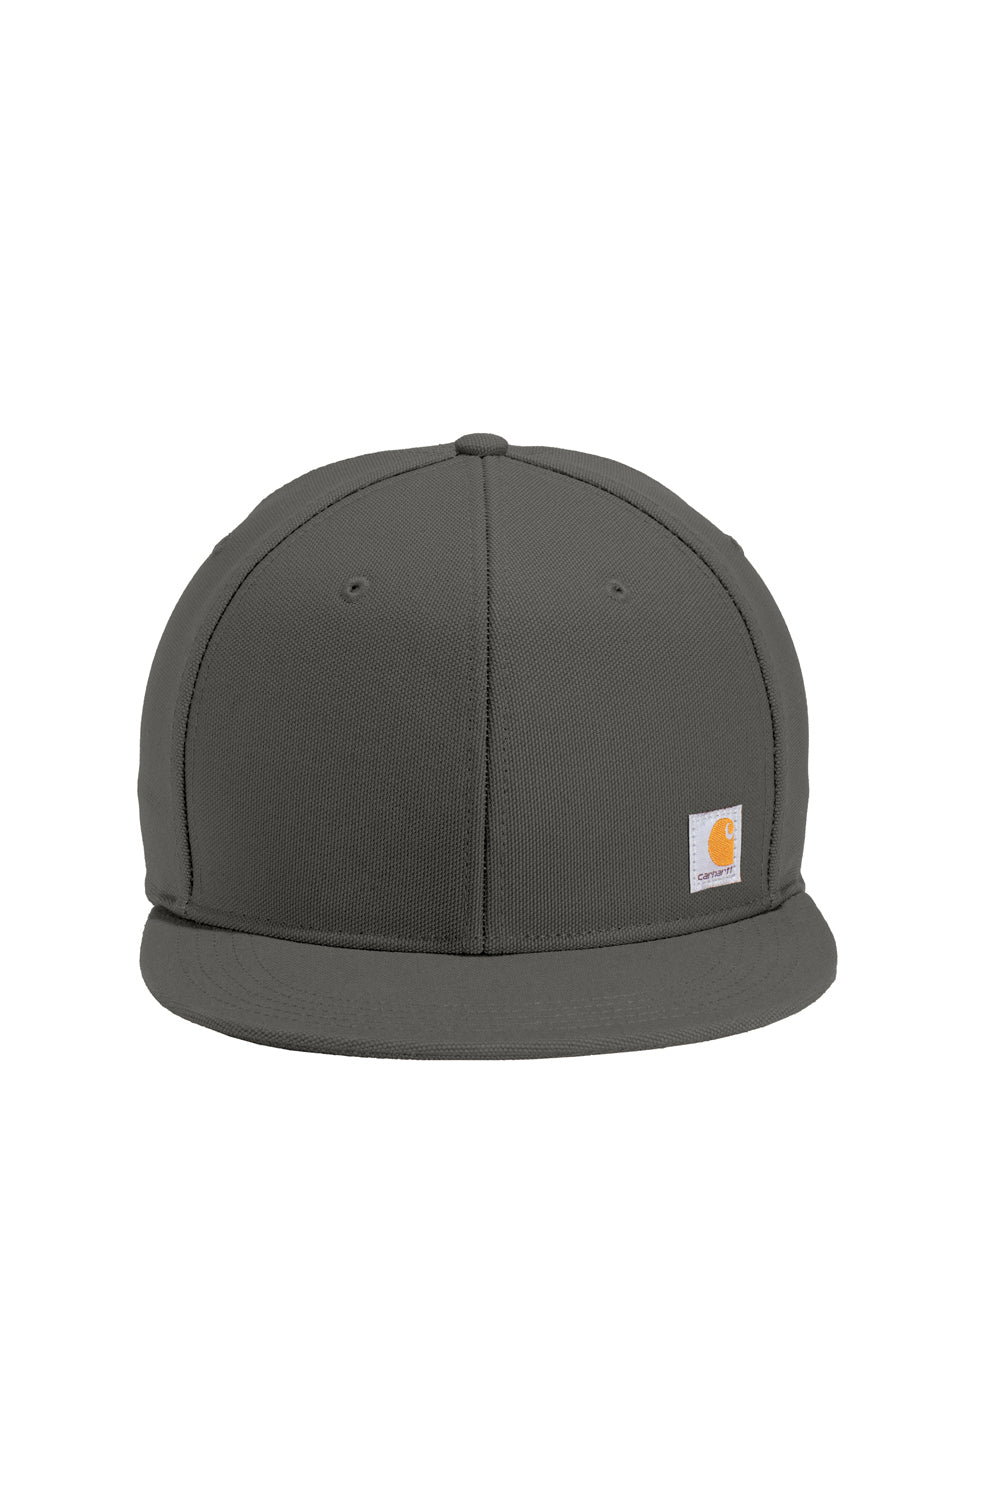 Carhartt CT101604 Mens Ashland FastDry Moisture Wicking Adjustable Hat Gravel Grey Front